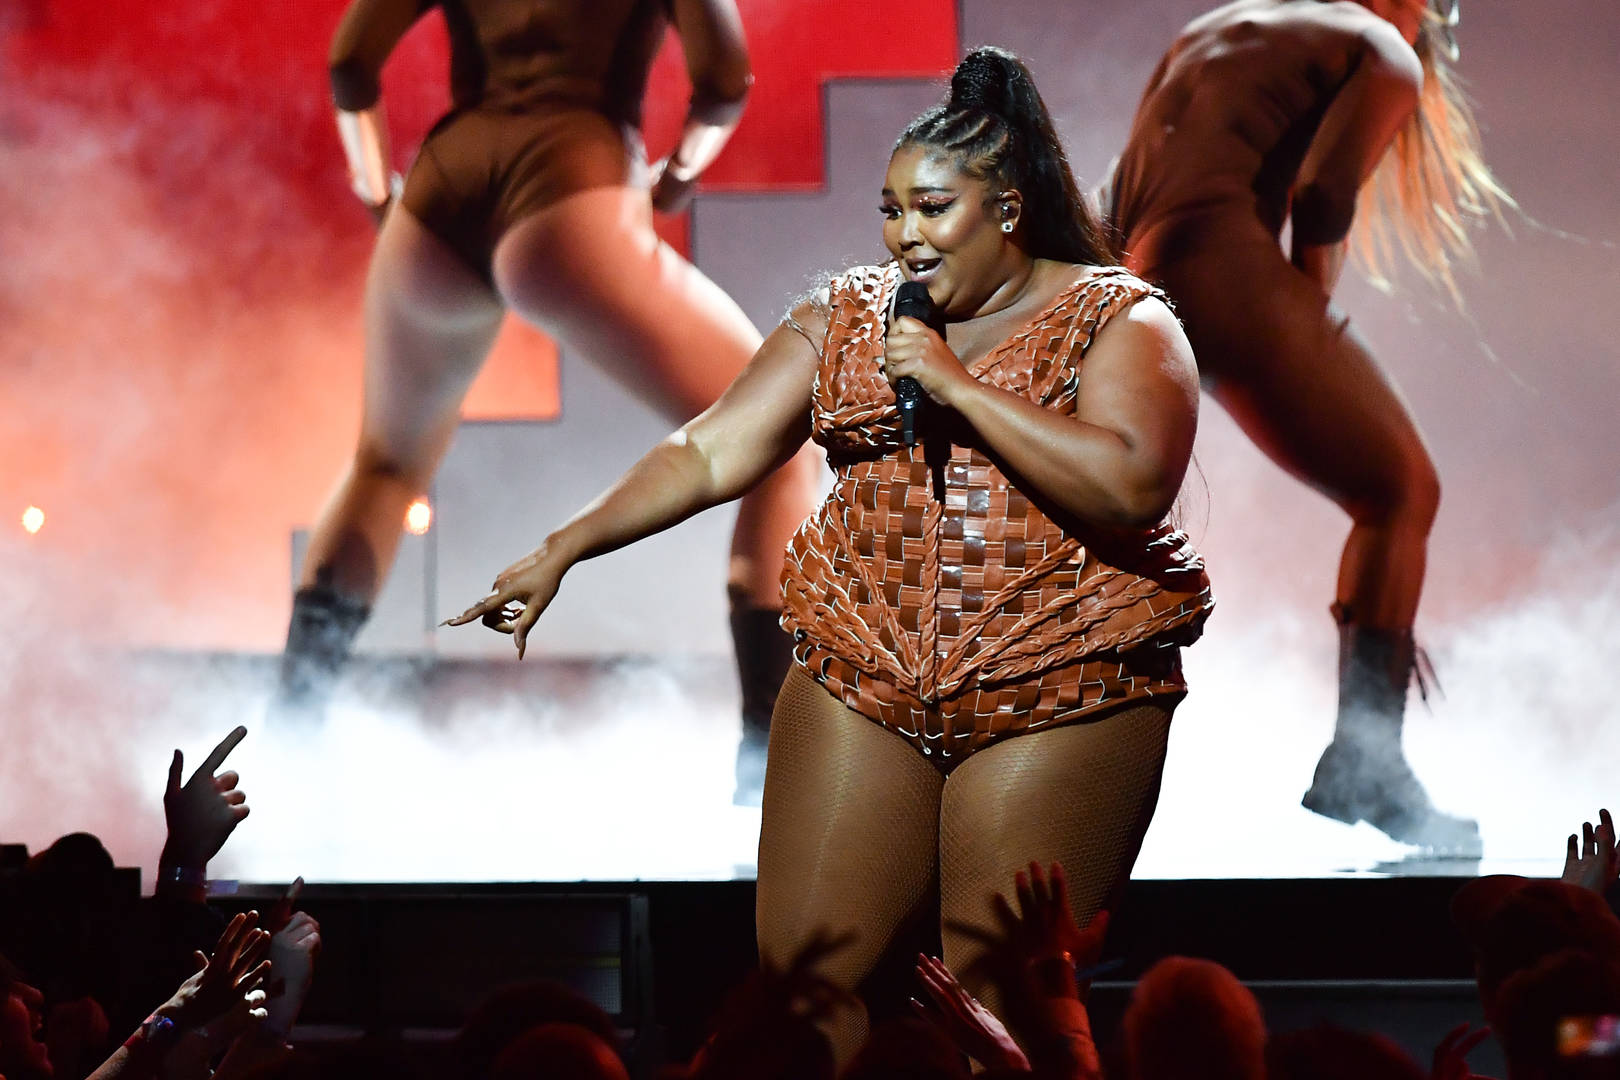 TikTok Responds to Lizzo Swimsuit Video Controversy